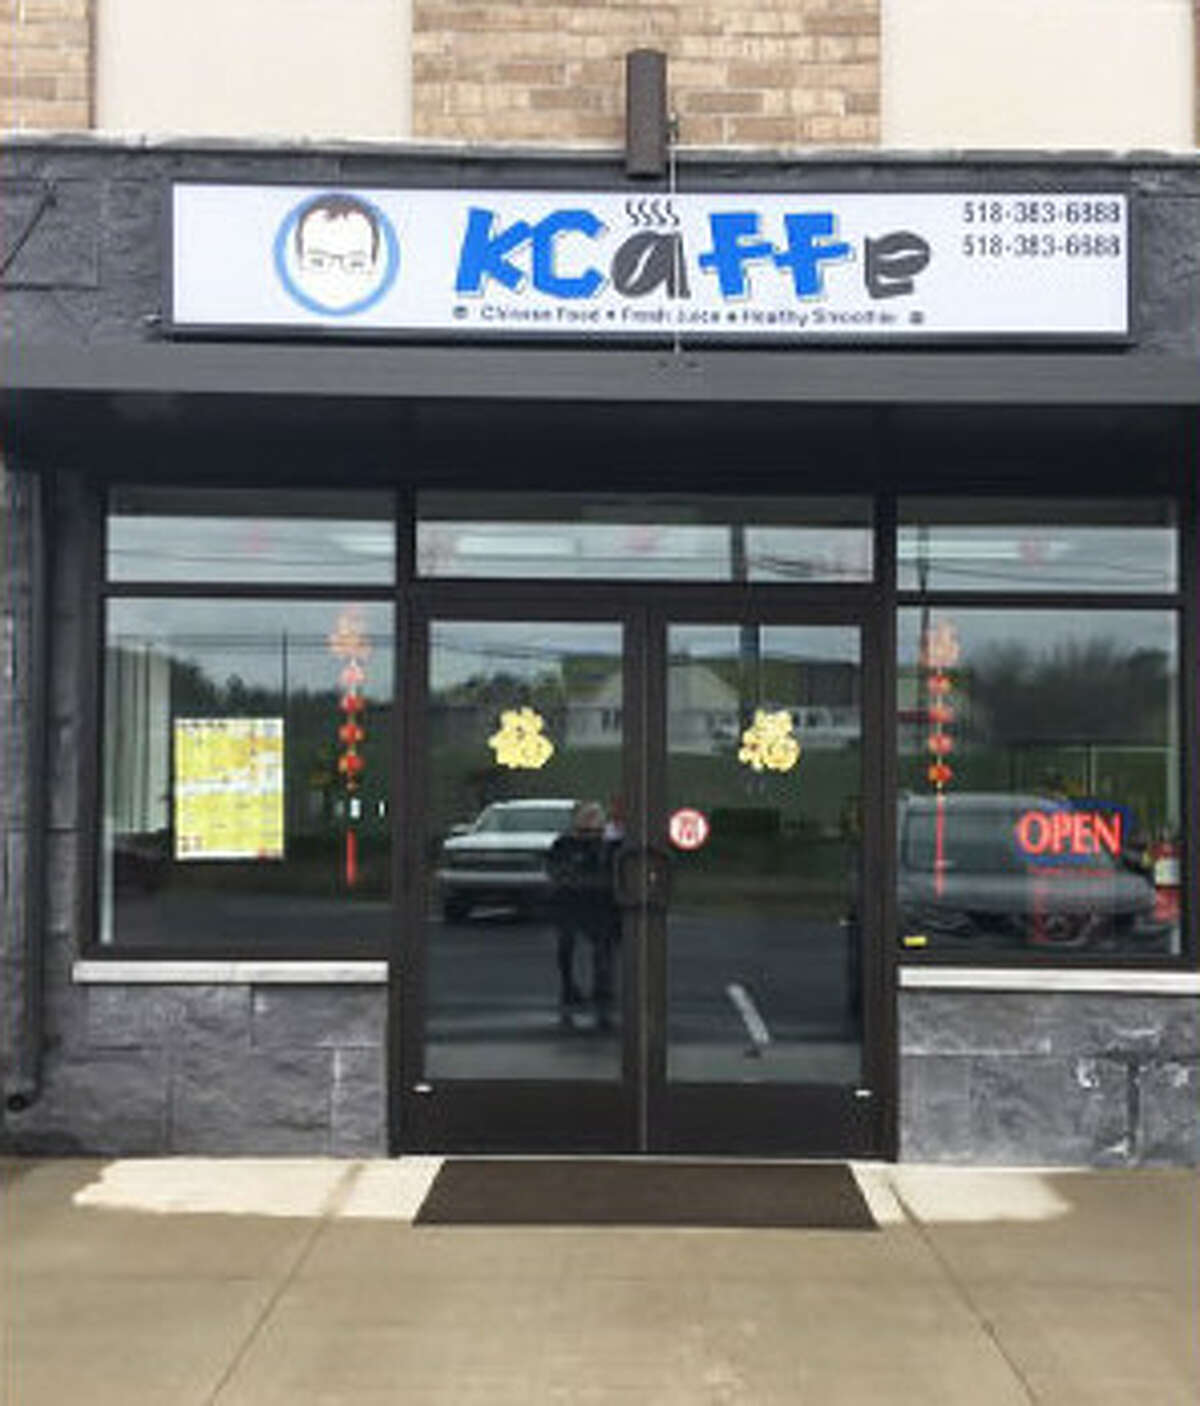 Kcaffe in Clifton Park opened in spring 2017.